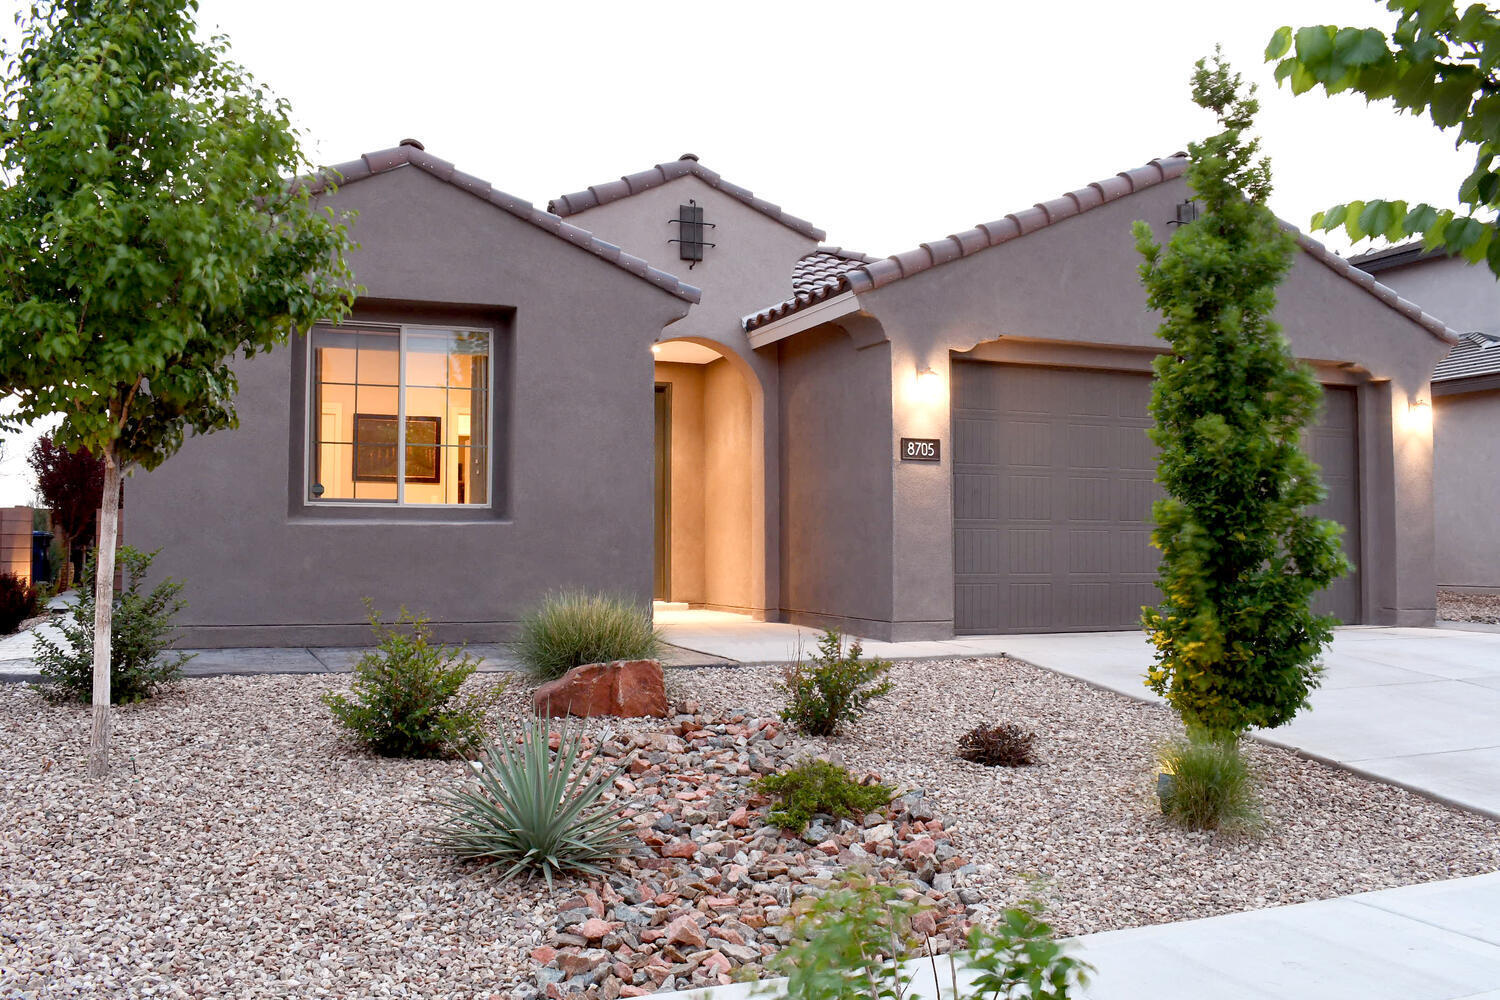 Beautiful Like New Darden Floorplan for sale in the sought after NE Community of Alameda Crossing. Home is in the La Cueva school district in a gated community. Open floorplan, chef kitchen, with quartz countertops in kitchen and stainless steel appliances. Plenty of storage in the oversized 2 1/2 car garage. Extended stamped/colored concrete patio in front and back with full wrap around sidewalk, commercial-grade acrylic sealant.  Full landscaping: front and back, sprinkler system in back yard, plant drips throughout, multi-zone sprinkler system w/timer.   The seller has added many improvement to include a security system, back yard landscaping, custom window treatments and more! See this home today before it is gone.......